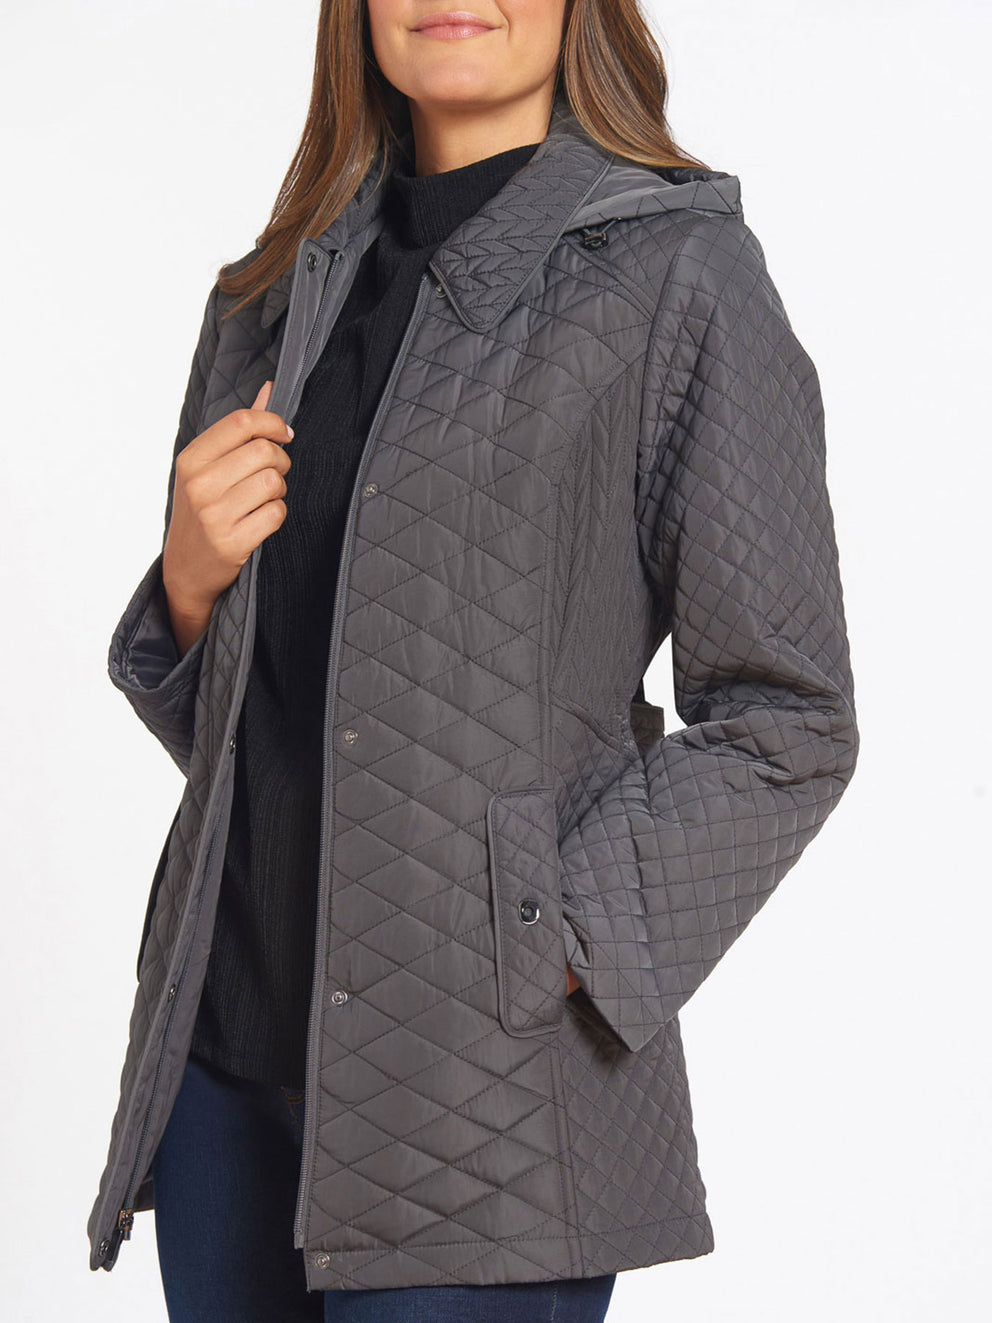 The Jones New York Quilted Snap Front Coat in color Gunmetal - Image Position 2